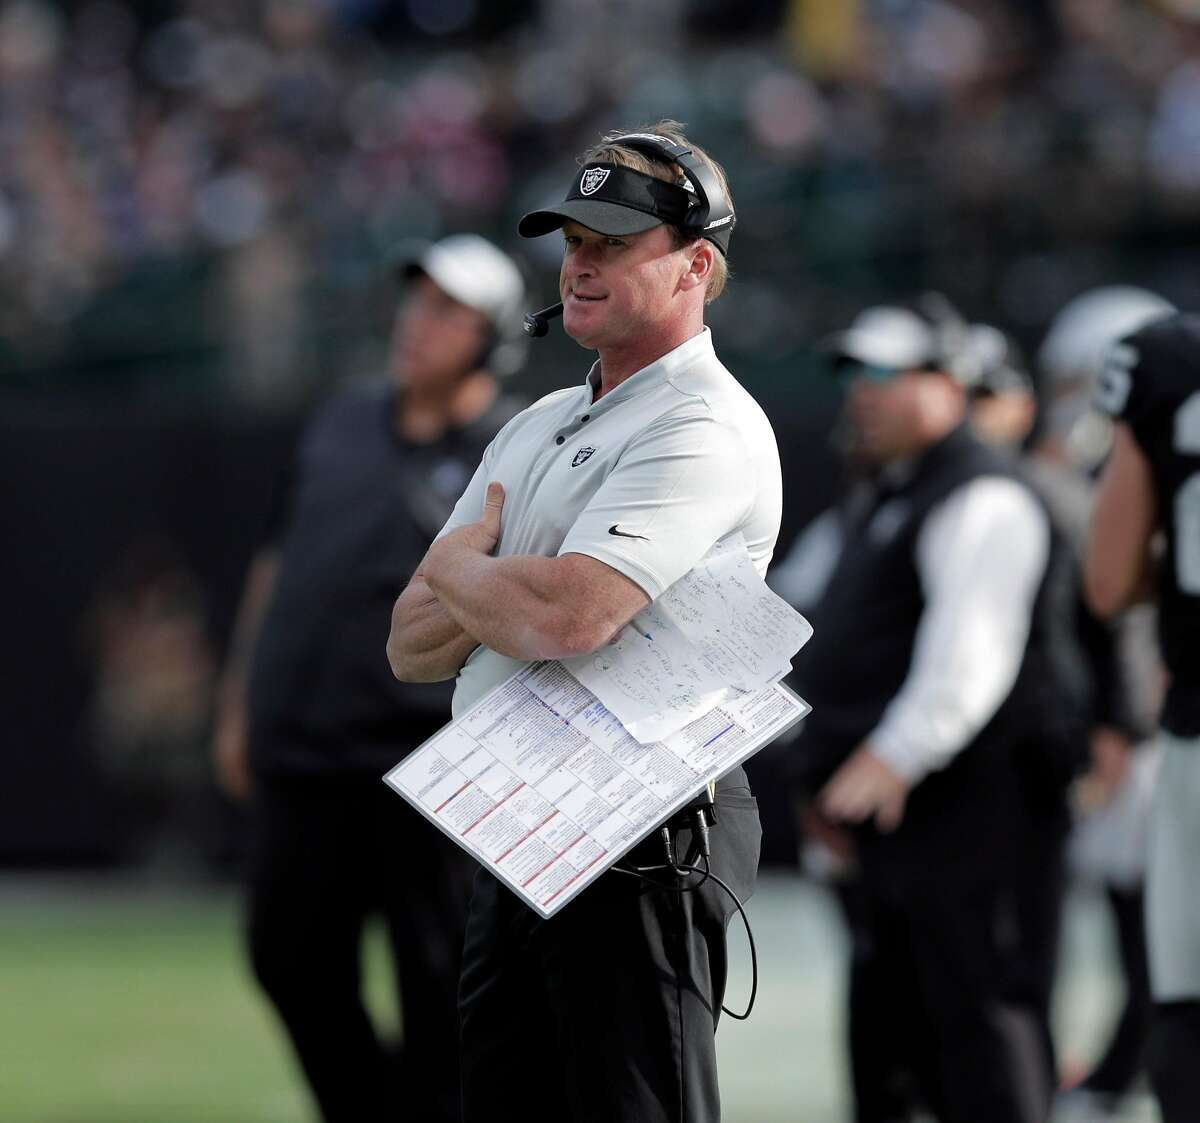 Raiders head coach Jon Gruden on the sidelines after his team fumbled the ball in the fourth quarter as the Oakland Raiders played the Indianapolis Colts at the Coliseum in Oakland, Calif., on Sunday, October 28, 2018. The Colts defeated the Raiders 42-28